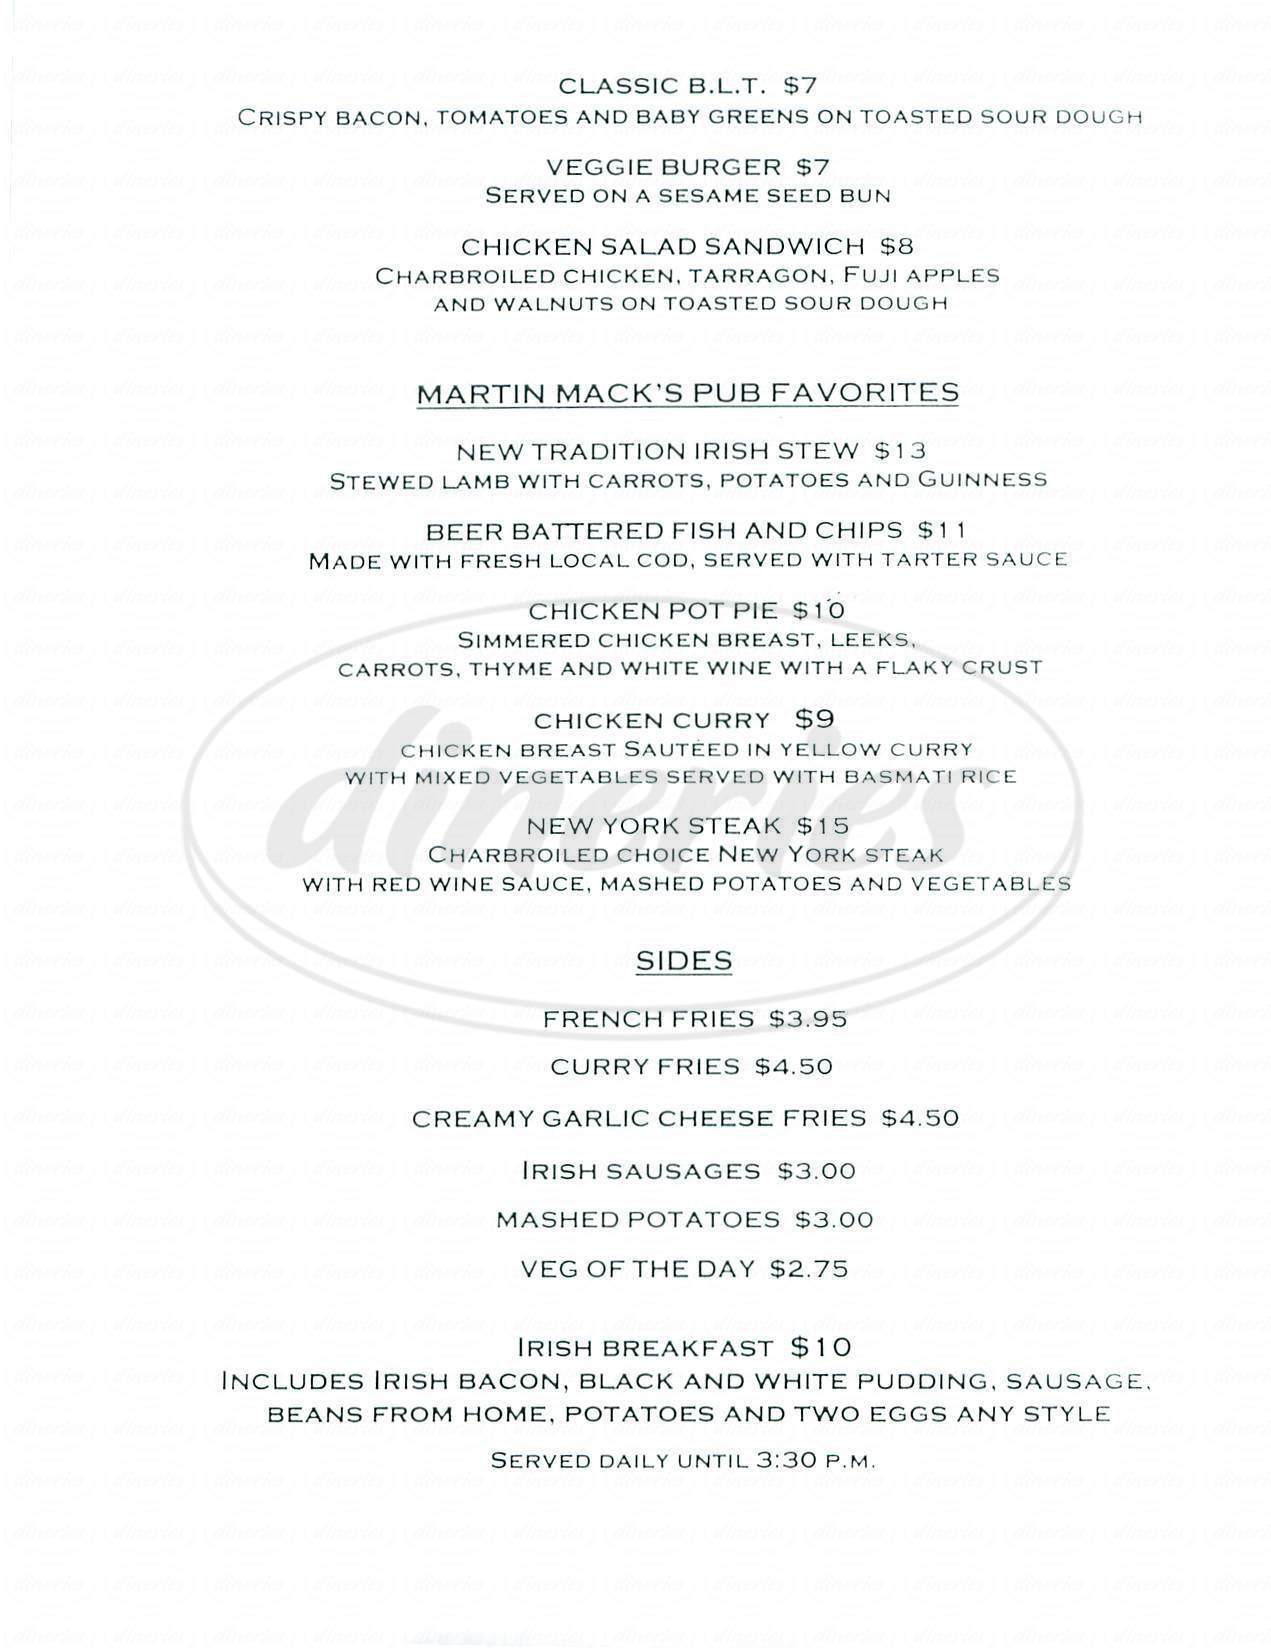 menu for Martin Mack's